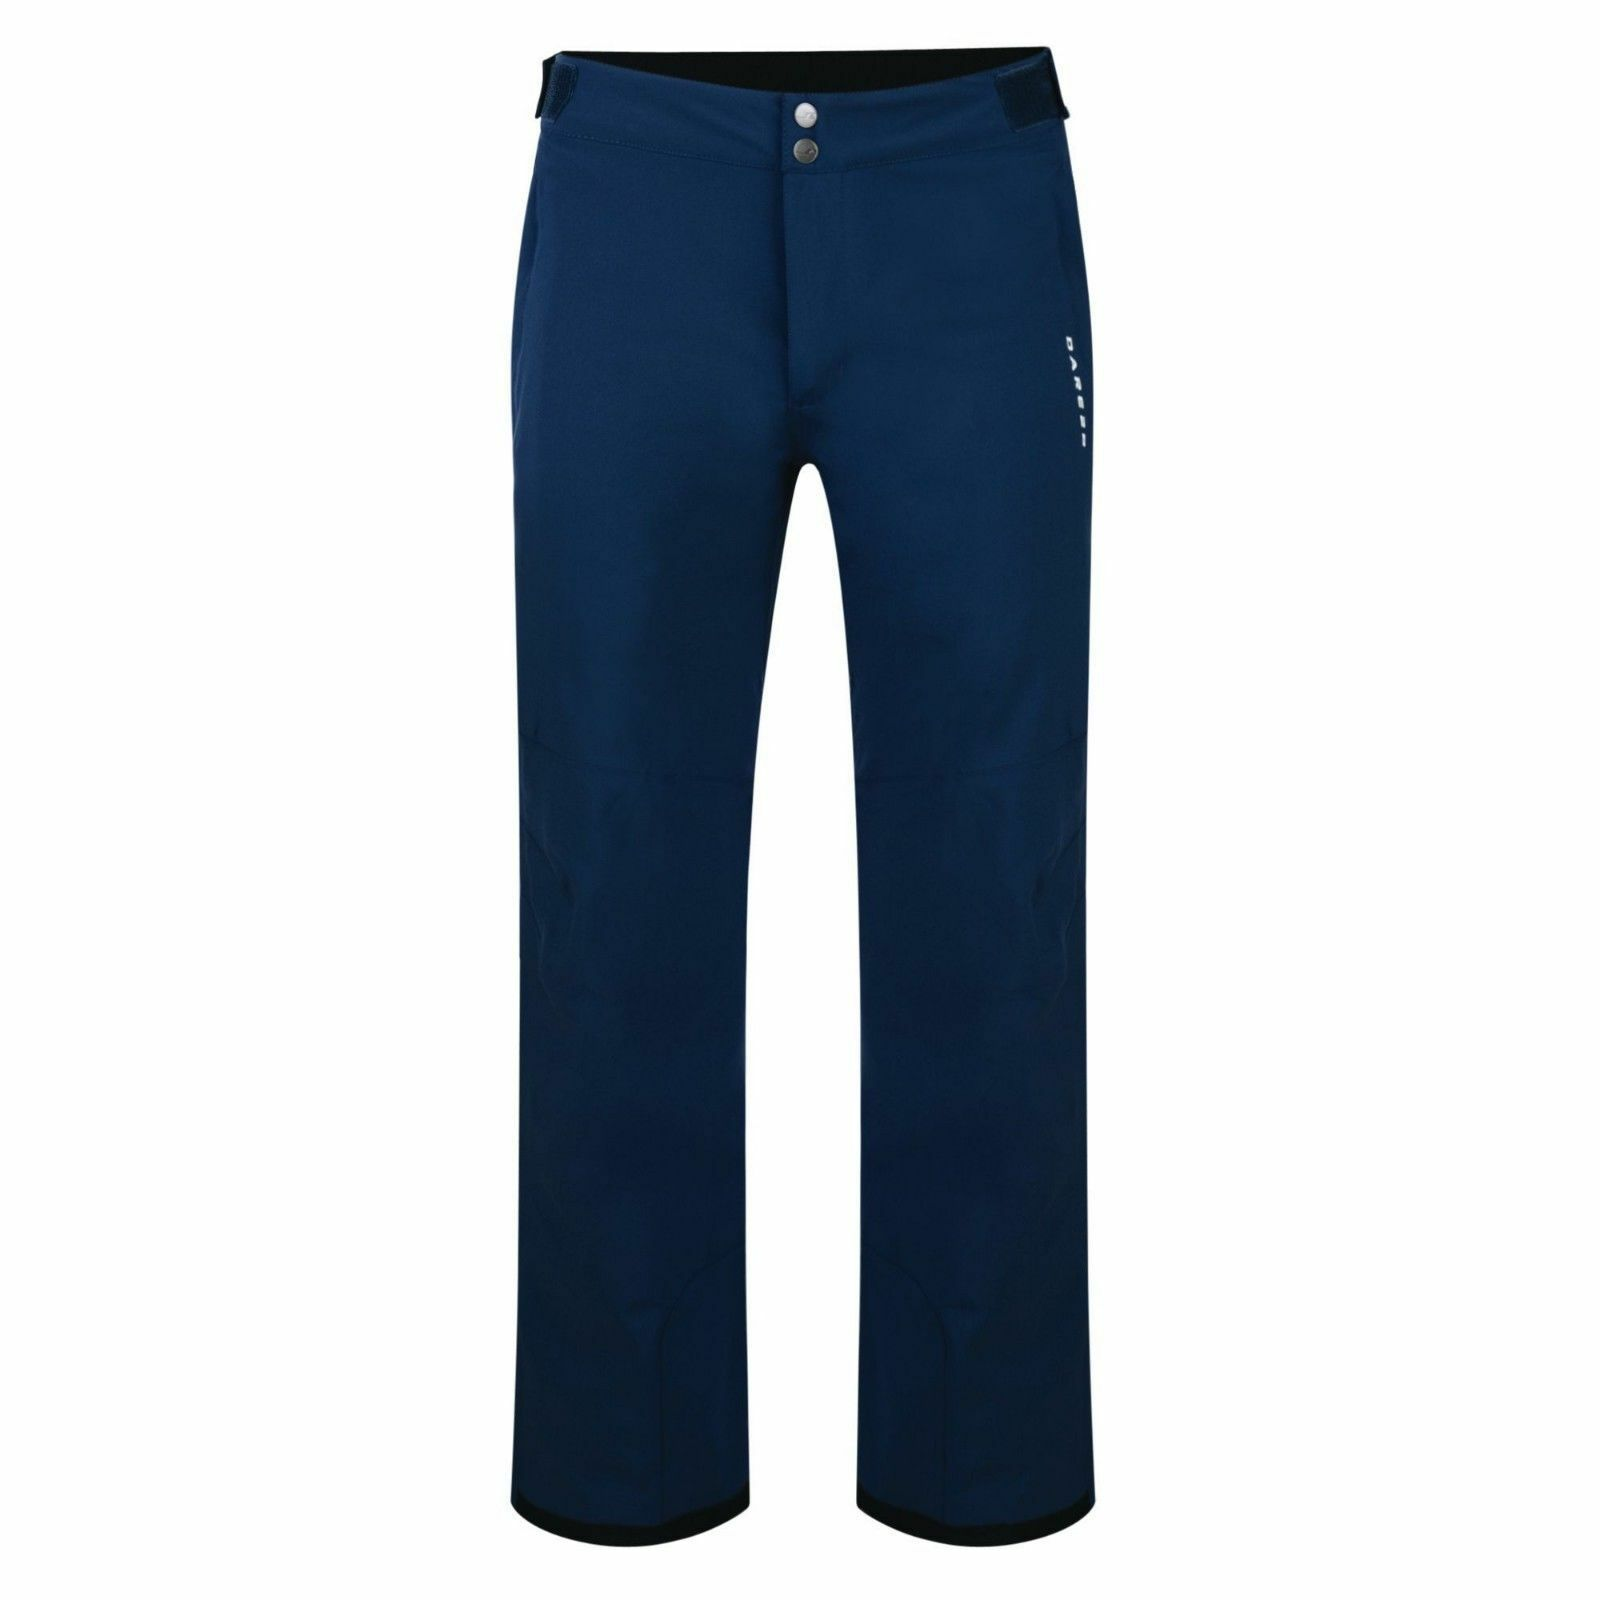 DARE 2B  Herren CERTIFY II SALOPETTES PANTS WATERPROOF ADMIRAL Blau EXTRA LARGE